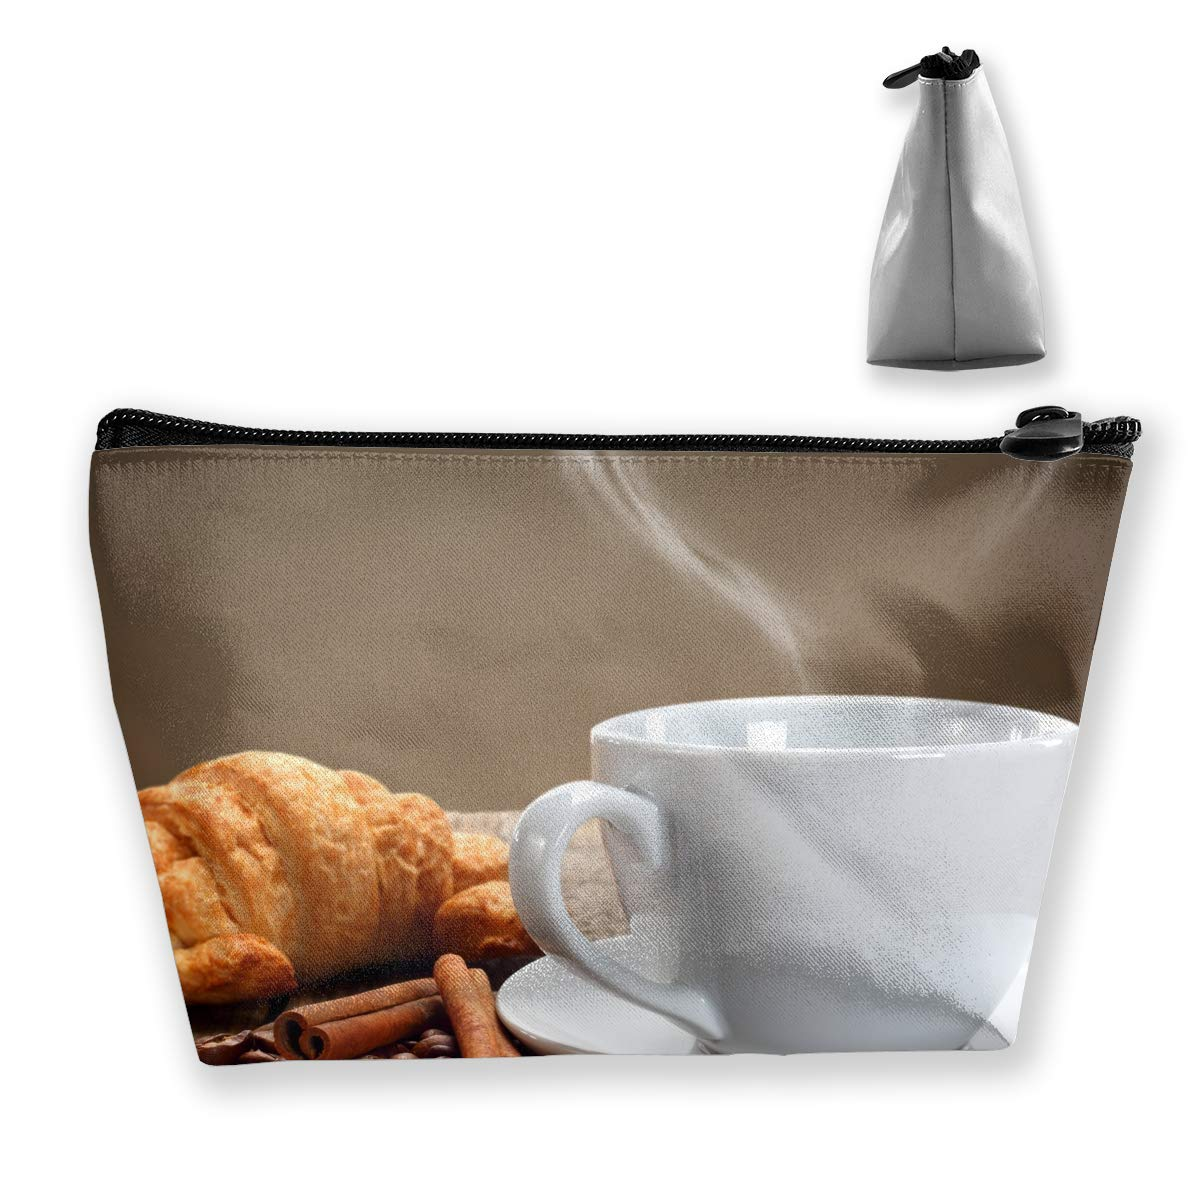 Trapezoid Toiletry Pouch Portable Travel Bag Bread Love Coffee Pen Organizer